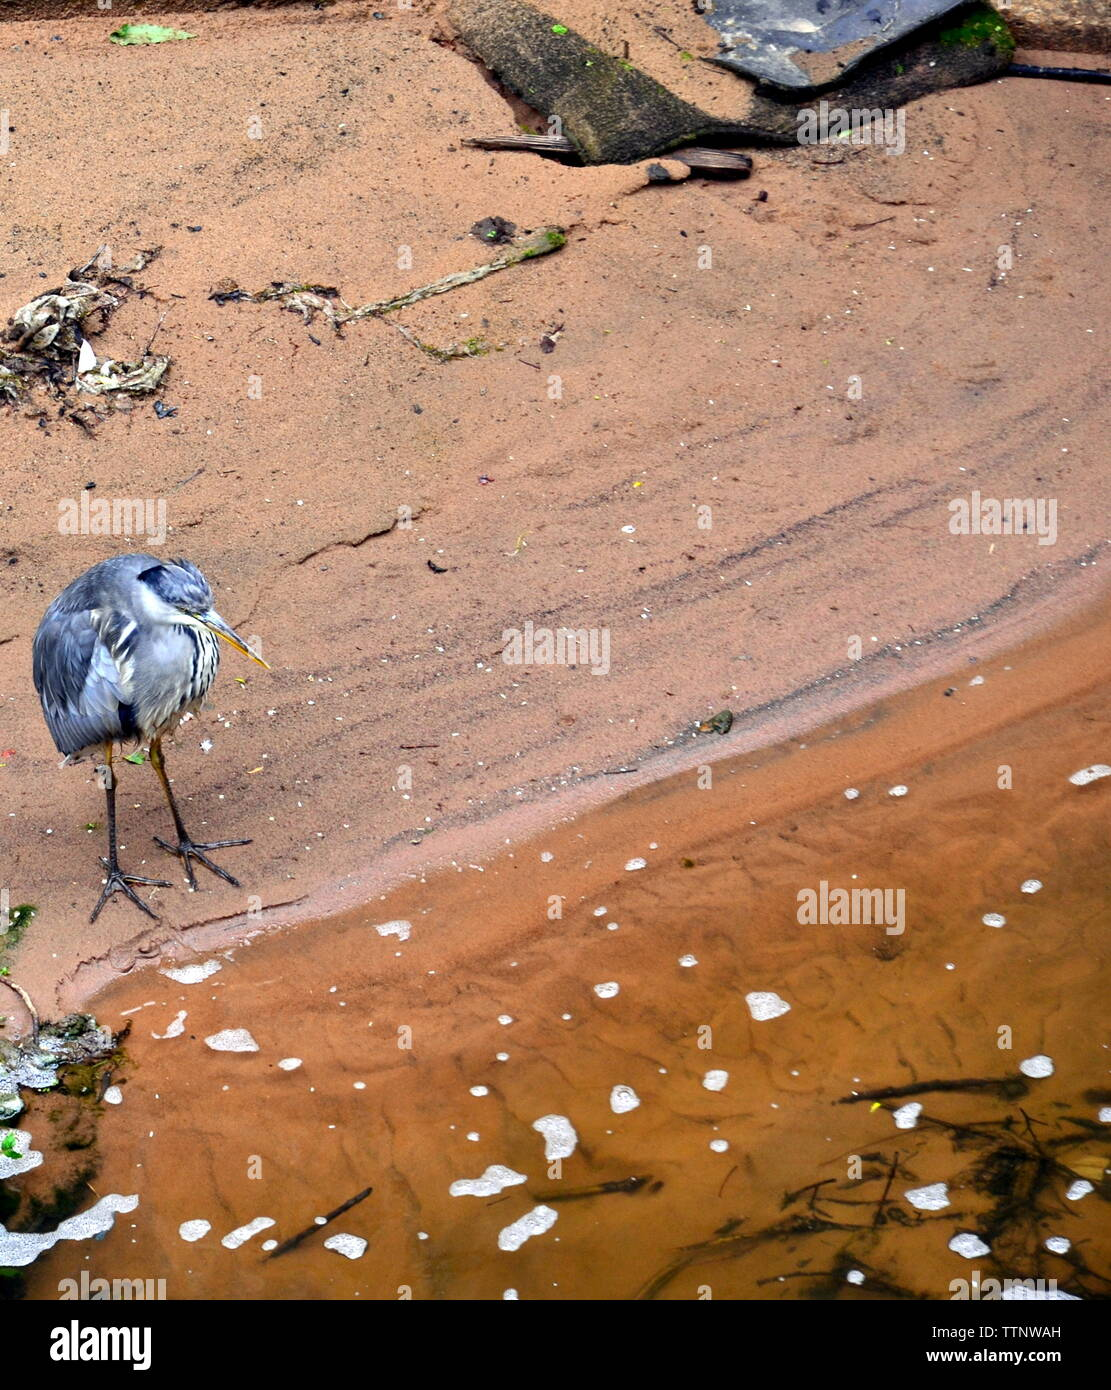 A young heron waits for fish on the River Medlock in city centre Manchester, uk. A report in 2018 showed that brown trout had returned to the formerly polluted river after a programme of improvements by the Environment Agency and Manchester City Council. - Stock Image